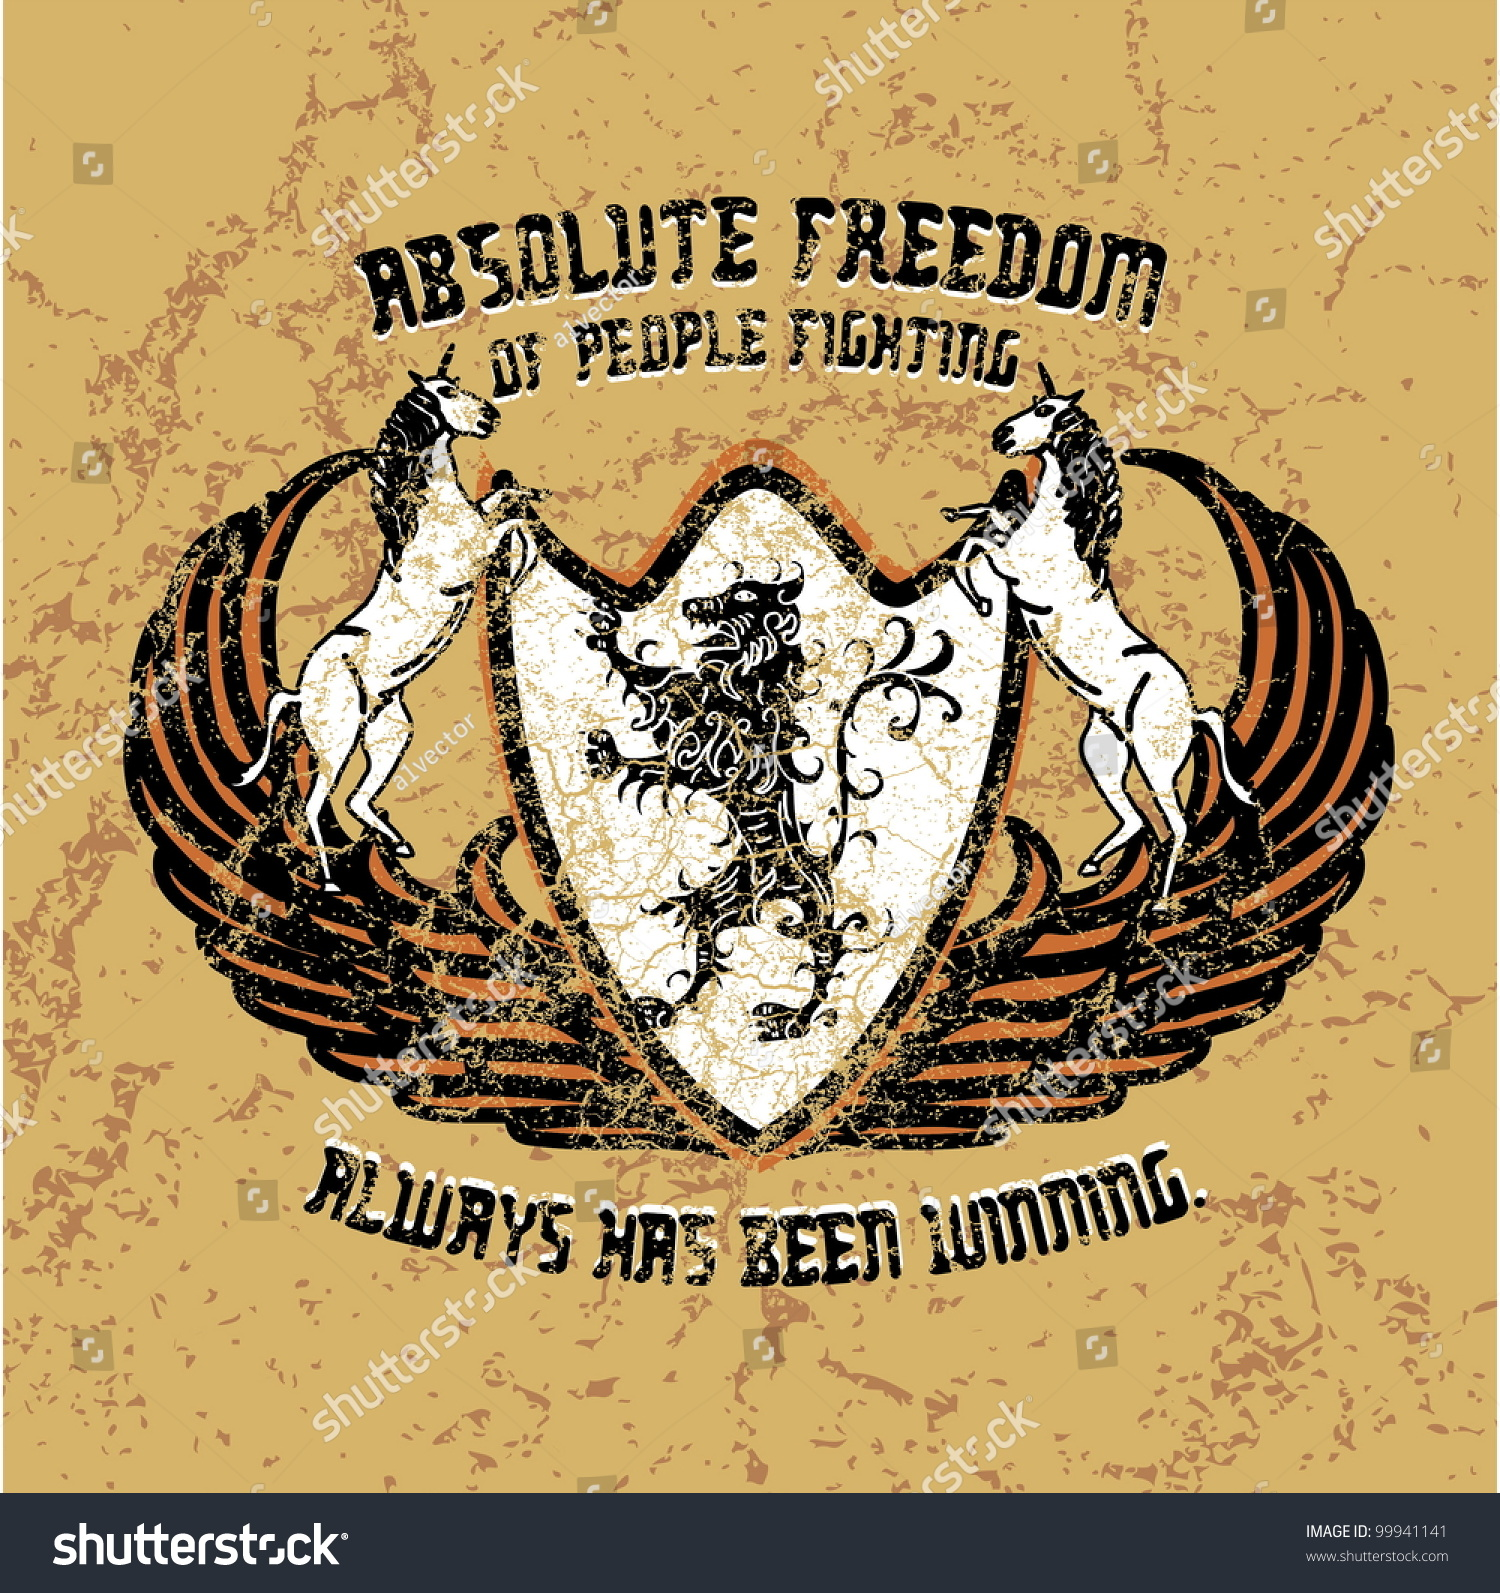 Absolute freedom stock vector illustration 99941141 shutterstock - Treehouses the absolute freedom ...